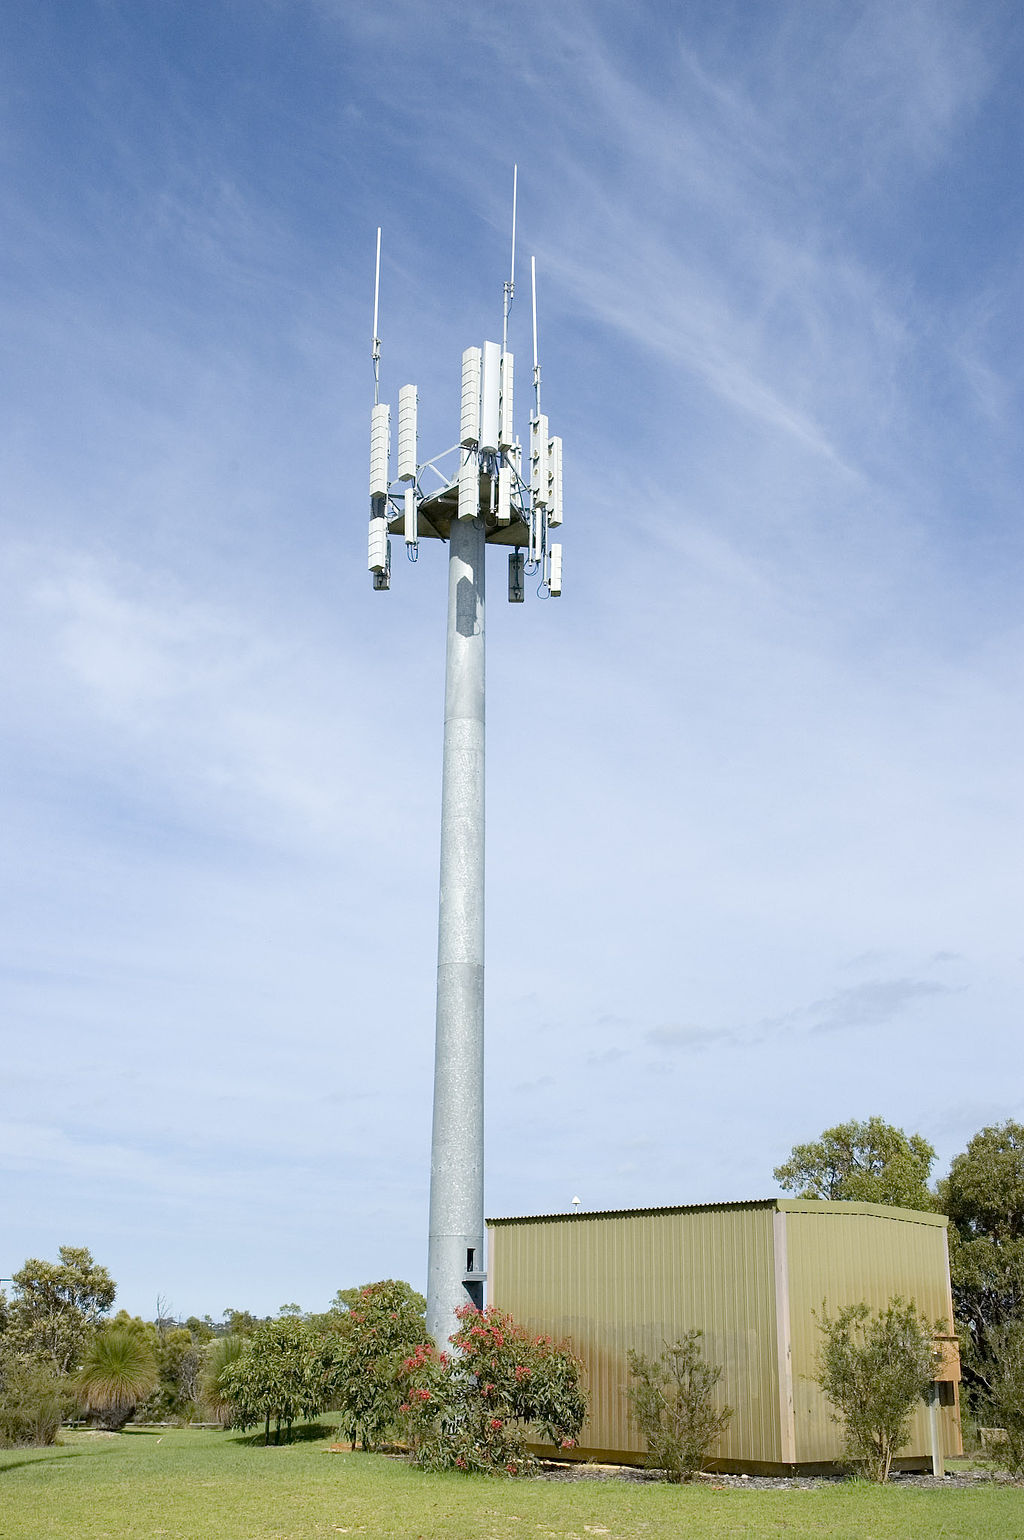 Mobile Phone Towers are Nearly Ubiquitous and Have Very Poor Energy Efficiency